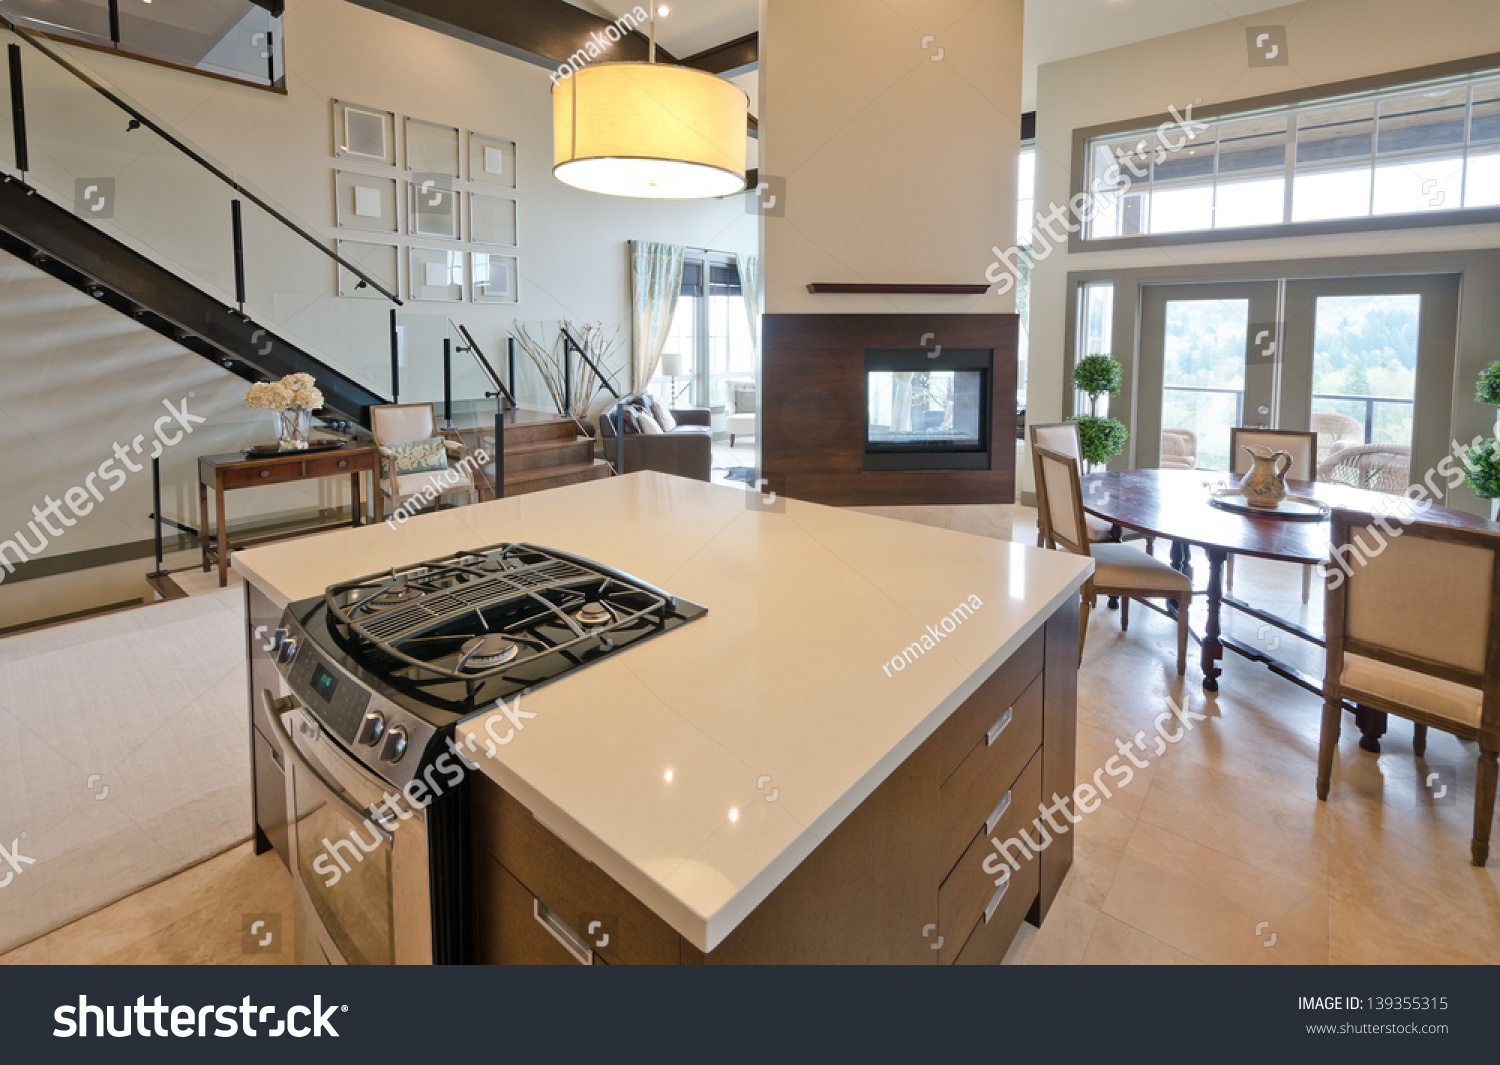 Modern kitchen fireplace - Luxury Modern Kitchen With The Living Room And The Fireplace At The Back Interior Design